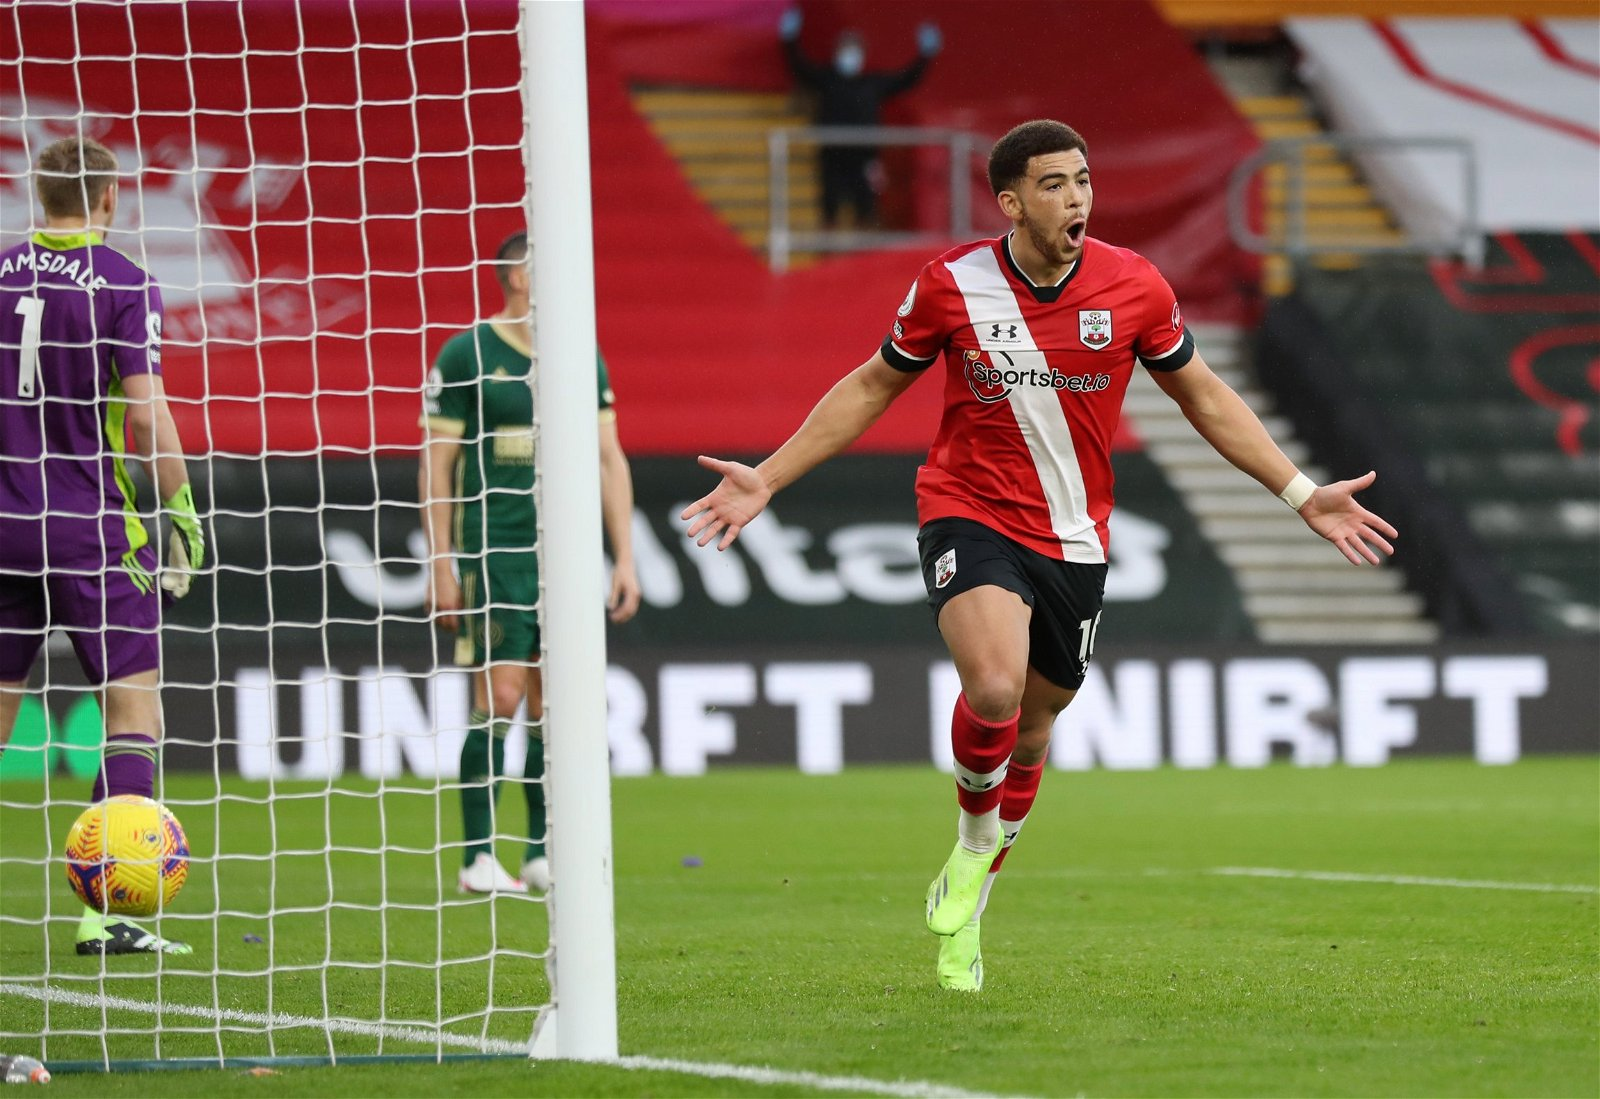 che adams celebrates scoring vs sheff utd premier league - Forget Adams: £13.5m-rated Southampton beast with 82 touches was the star of the show - opinion